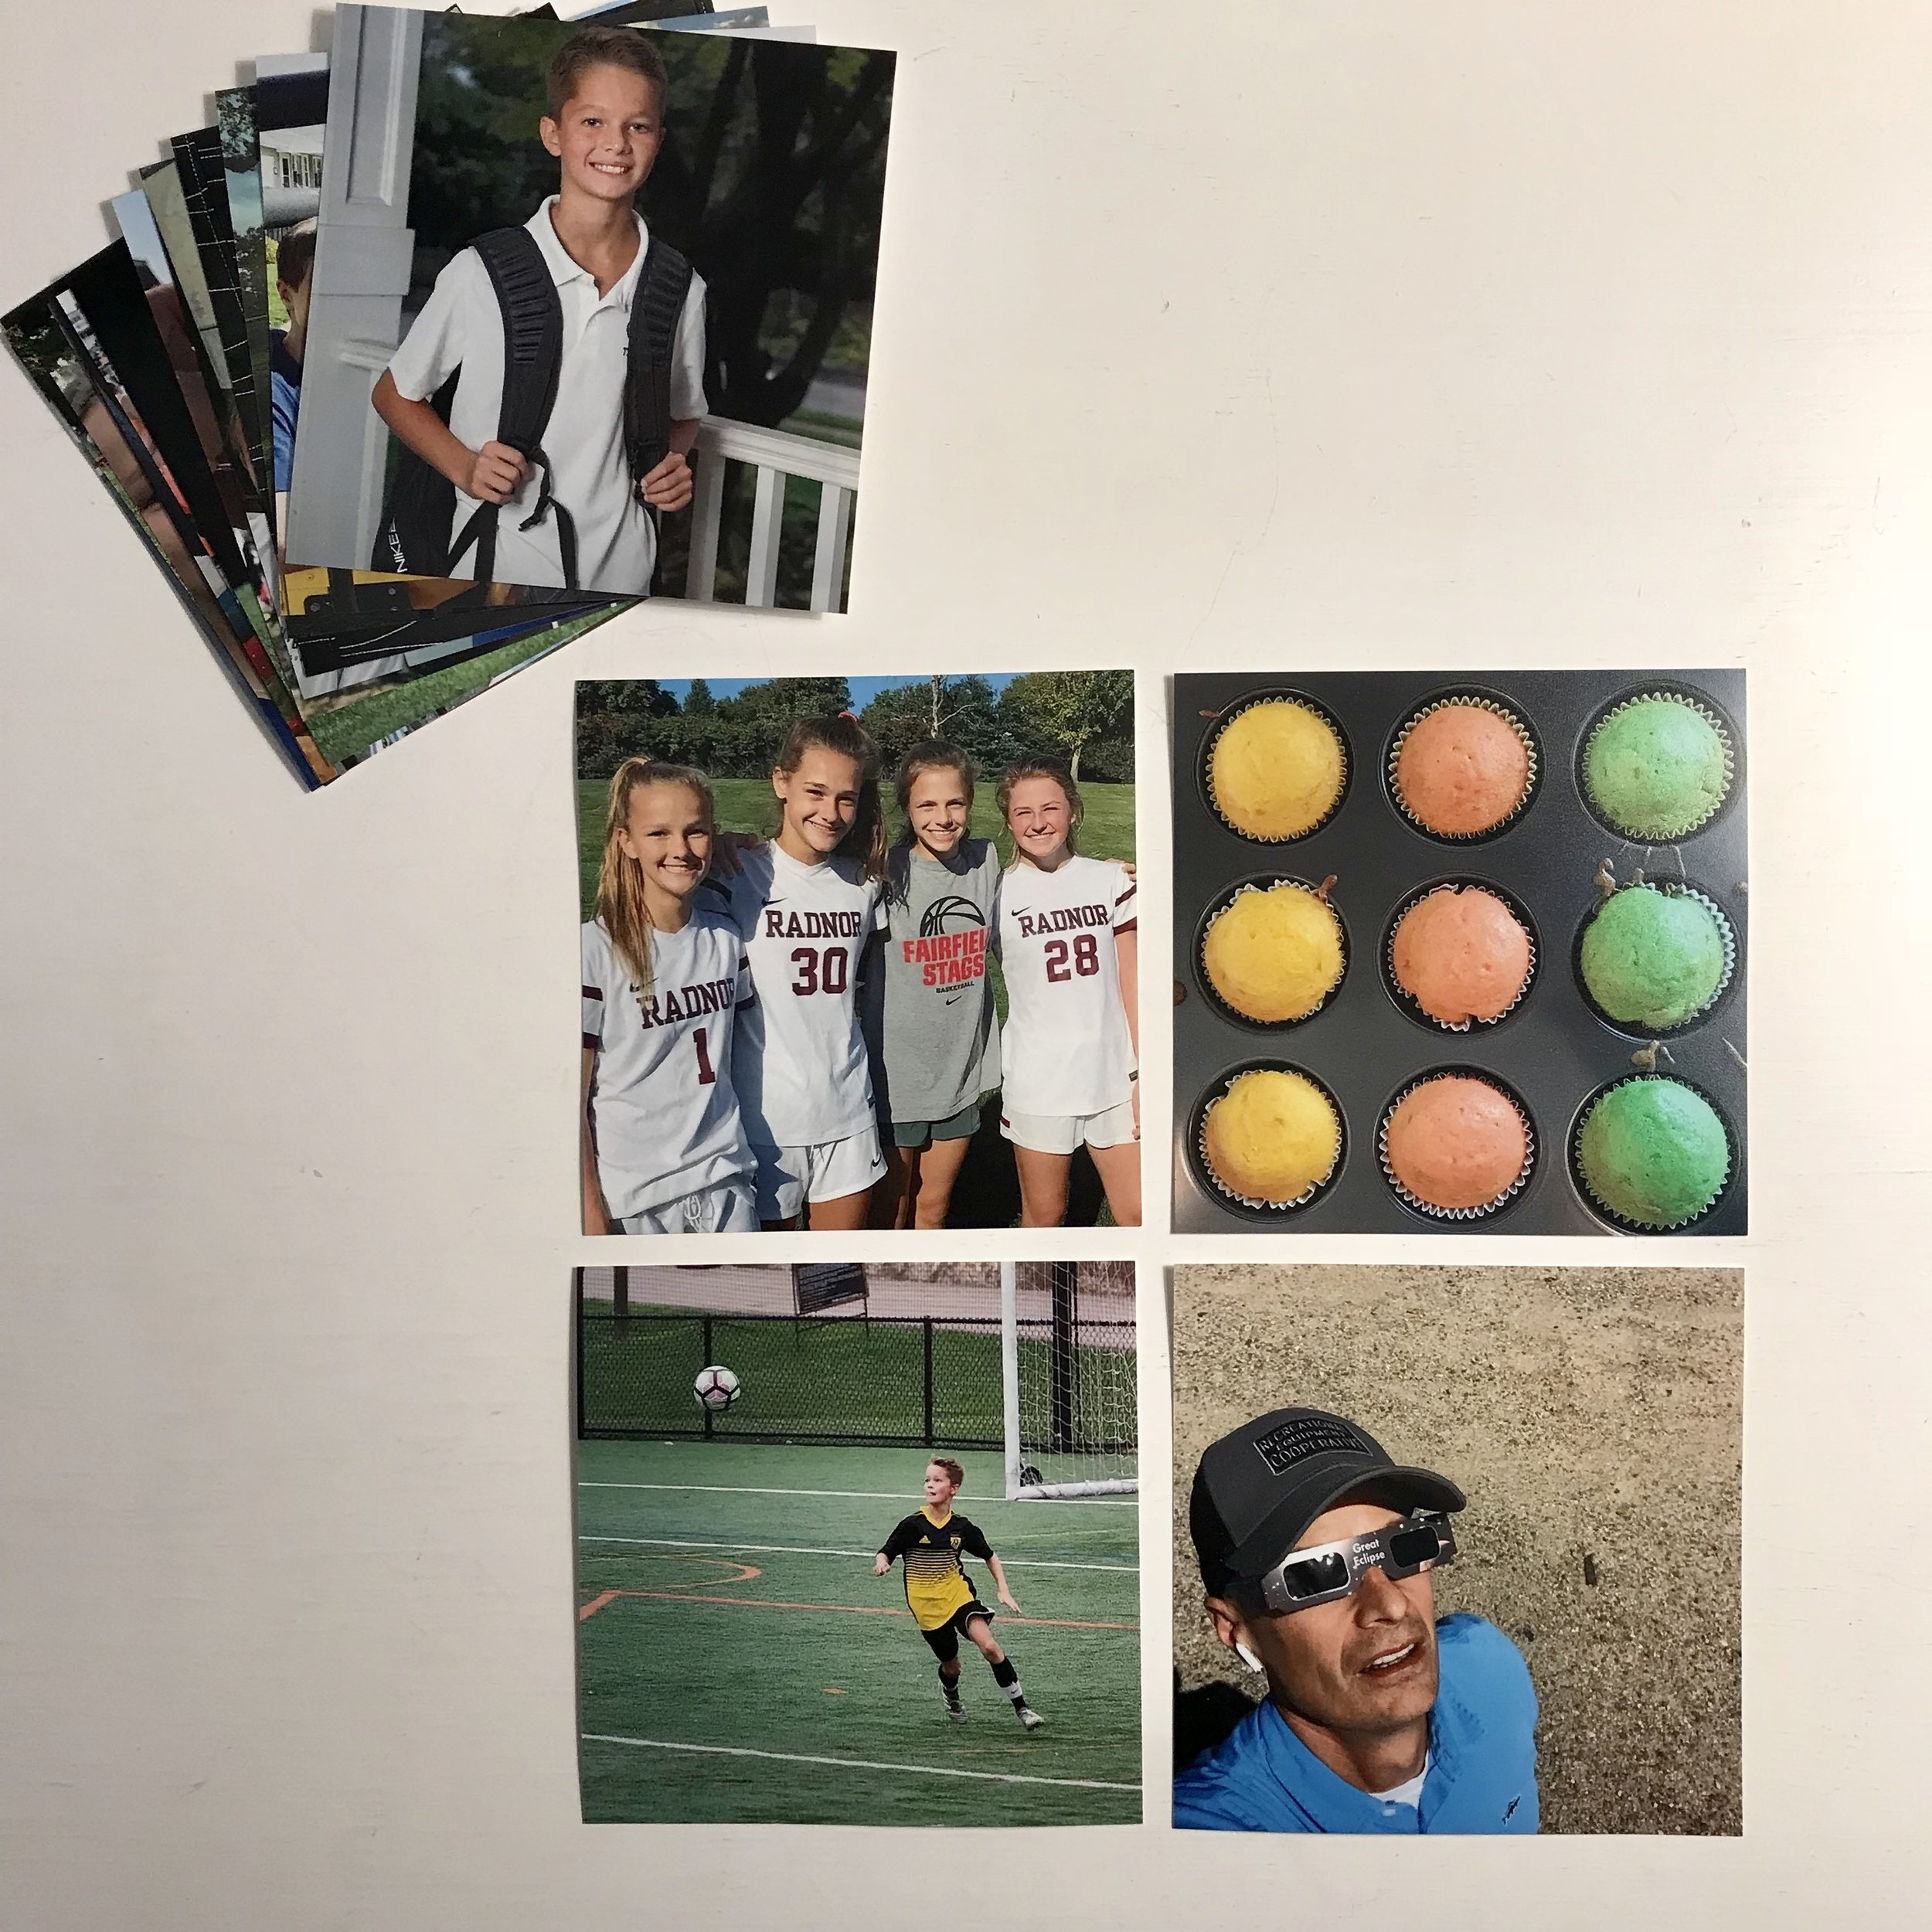 """My FREE 4x4"""" Photographs from Shutterfly - ©johnguillaume"""